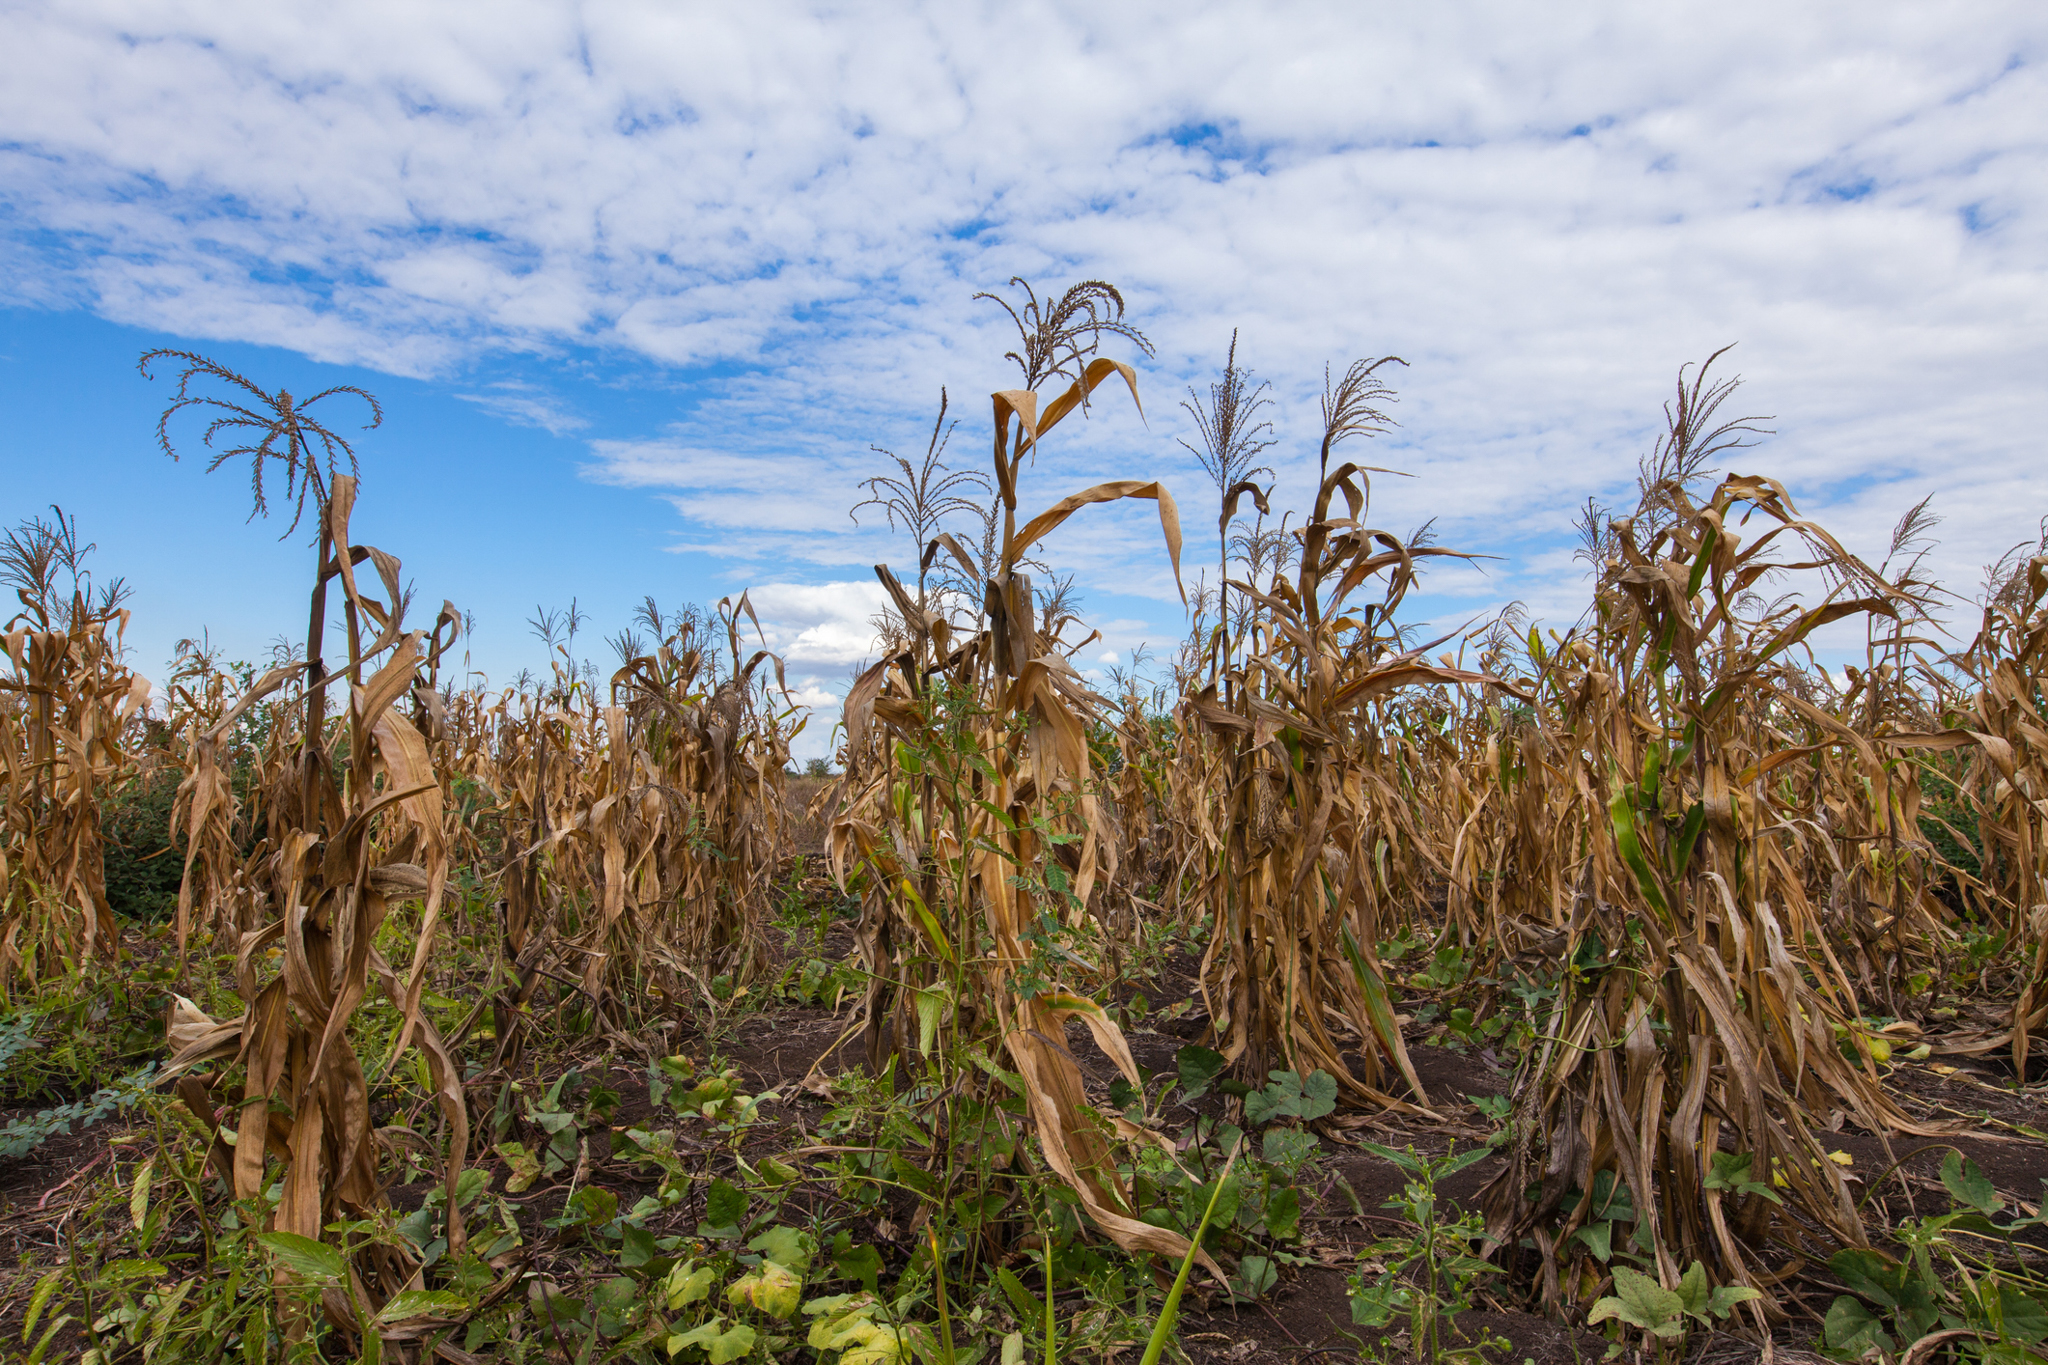 Maize plants wither in a field in southern Malawi, victims of severe drought conditions brought on by the 2016 El Niño. Climate change has made scenes like this increasingly common across Africa. Photo by Guido Dingemans, De Eindredactie (Getty)